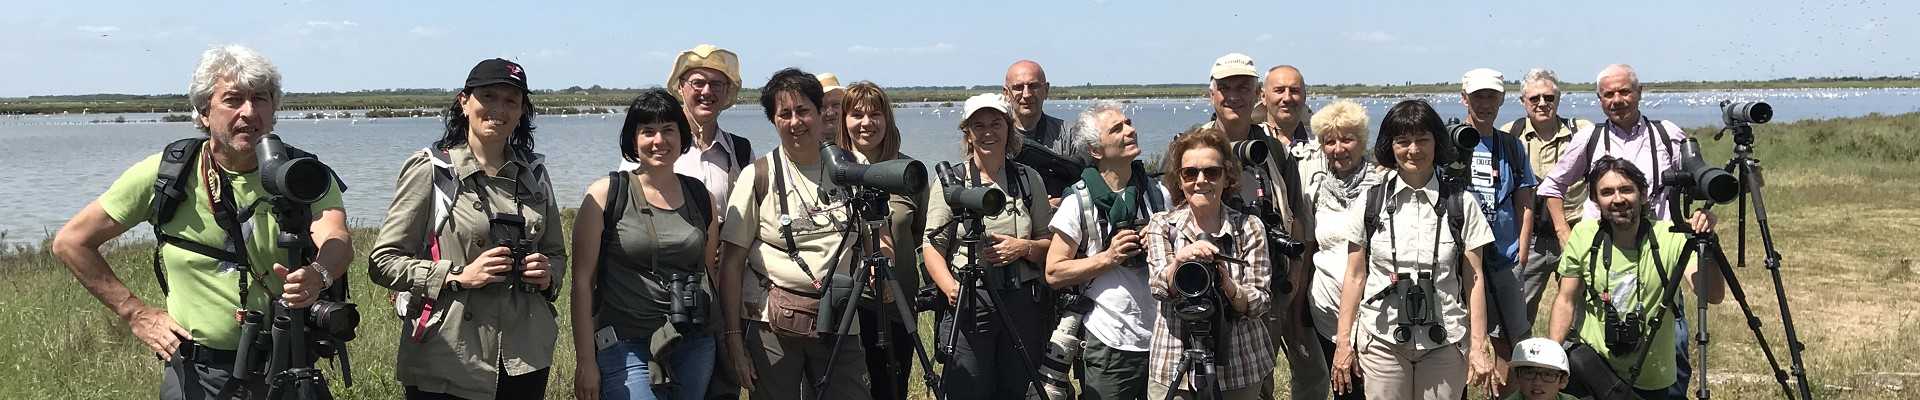 Il Birdwatching Italiano